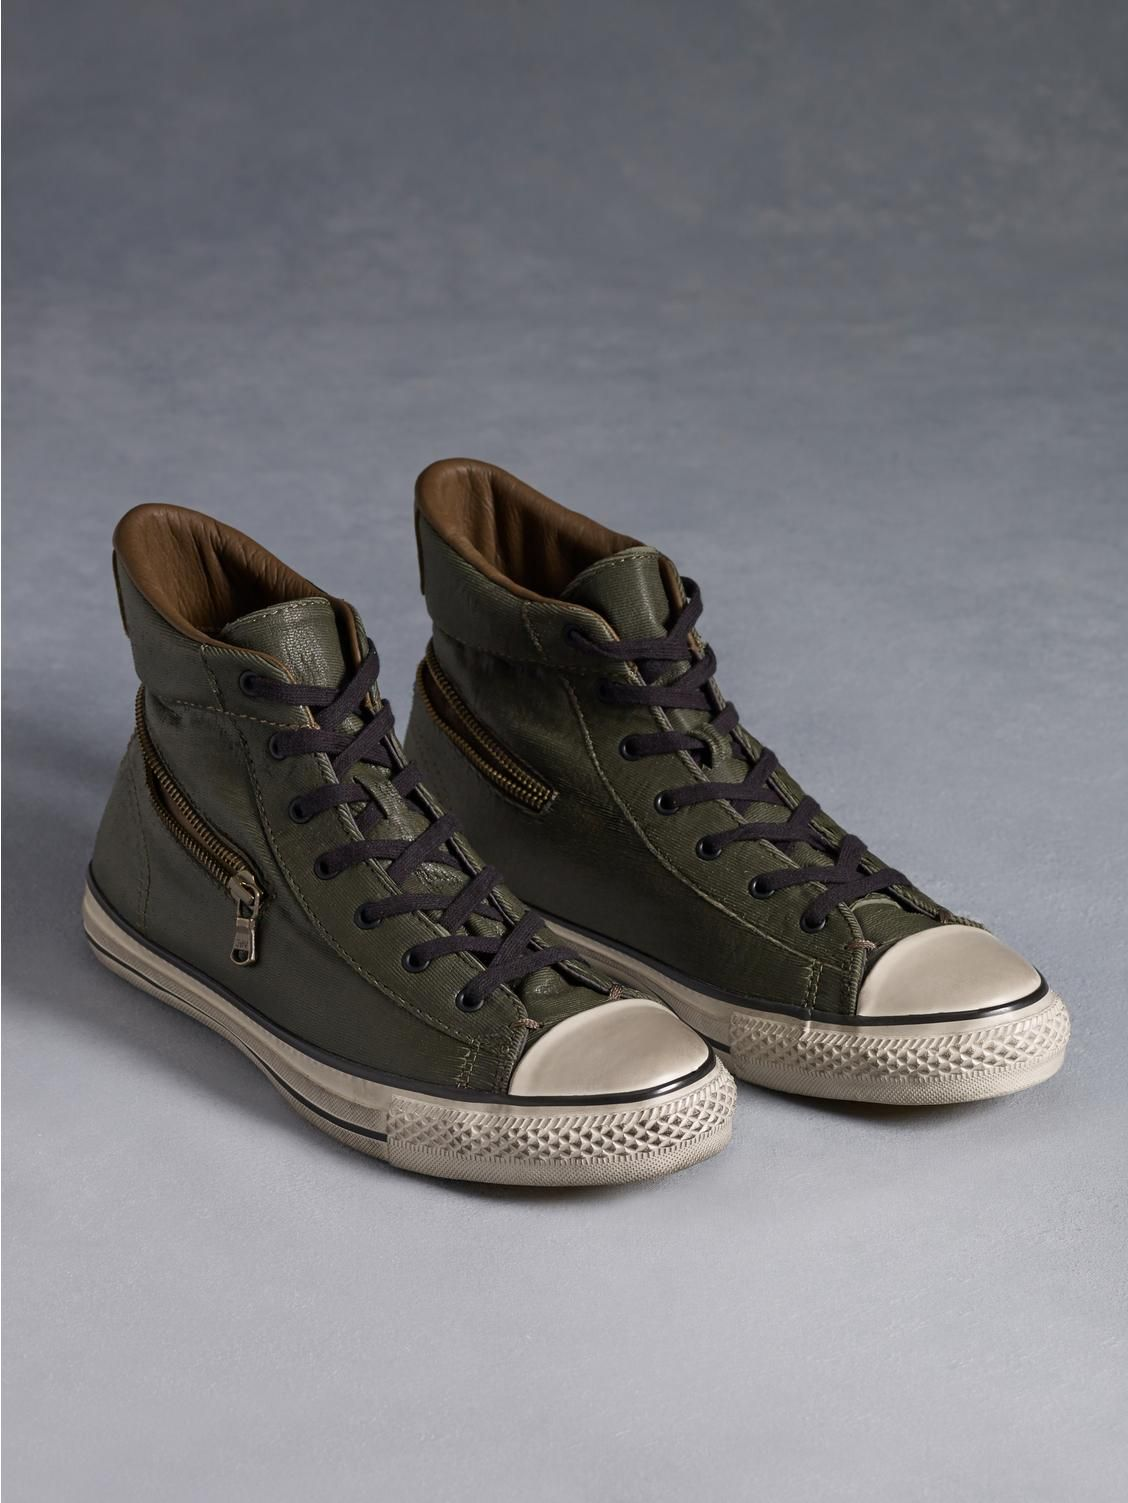 3e39957df559 Chuck Taylor All Star Back Zip High Top - John Varvatos